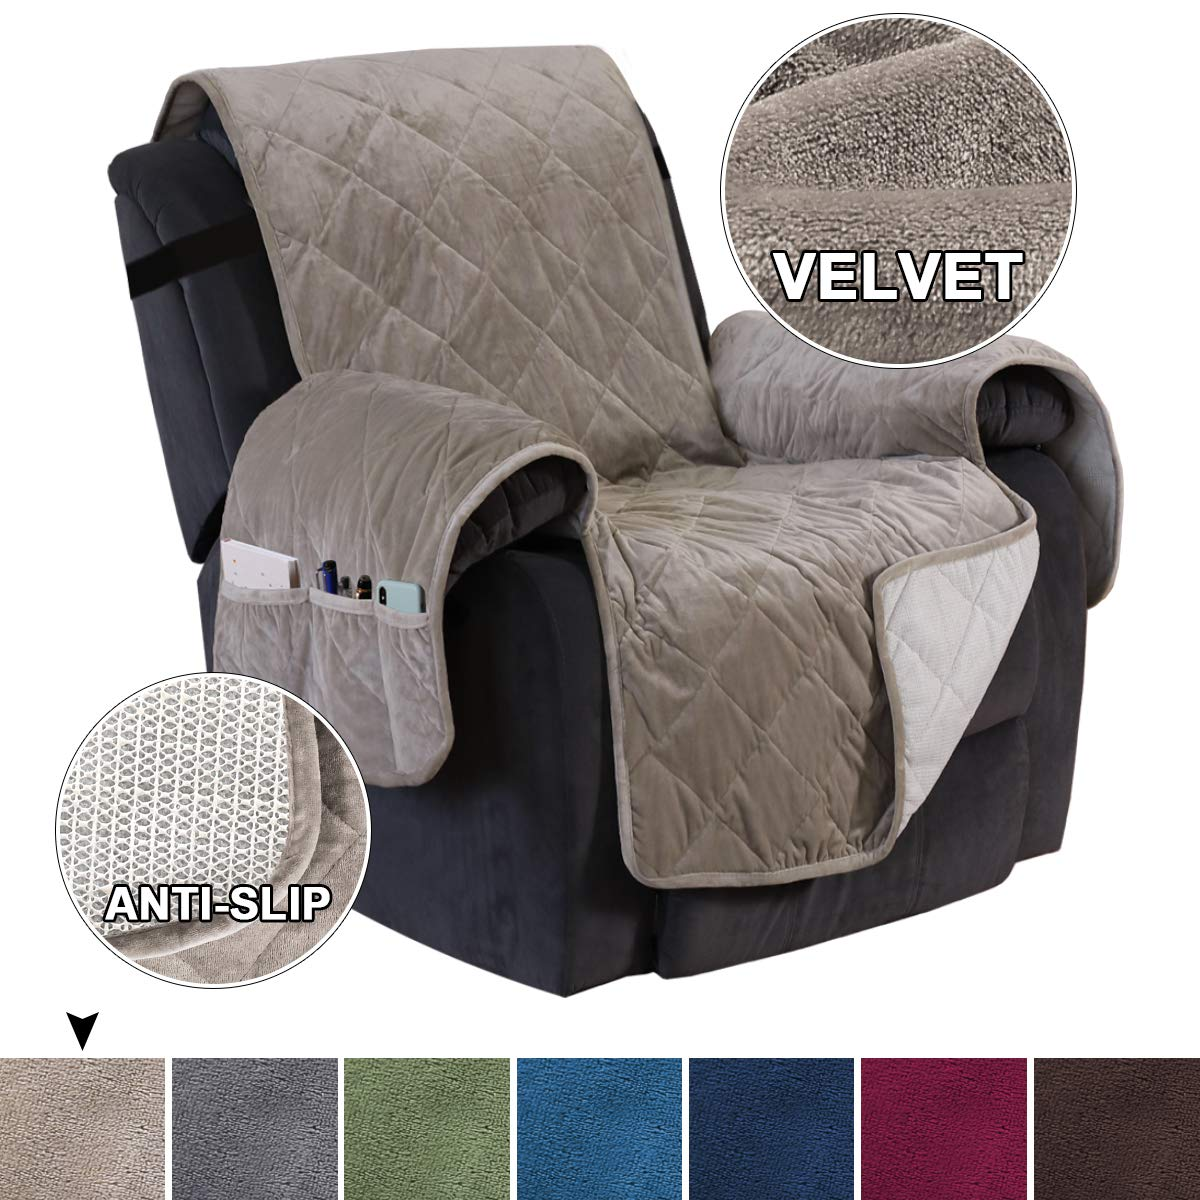 Velvet Recliner Slipcover Slip Resistant Furniture Cover for Large Recliner, Seat Width Up to 28 Inch Washable Furniture Protector Slip Cover Throw for Pets Furniture Cover (Recliner, Taupe)